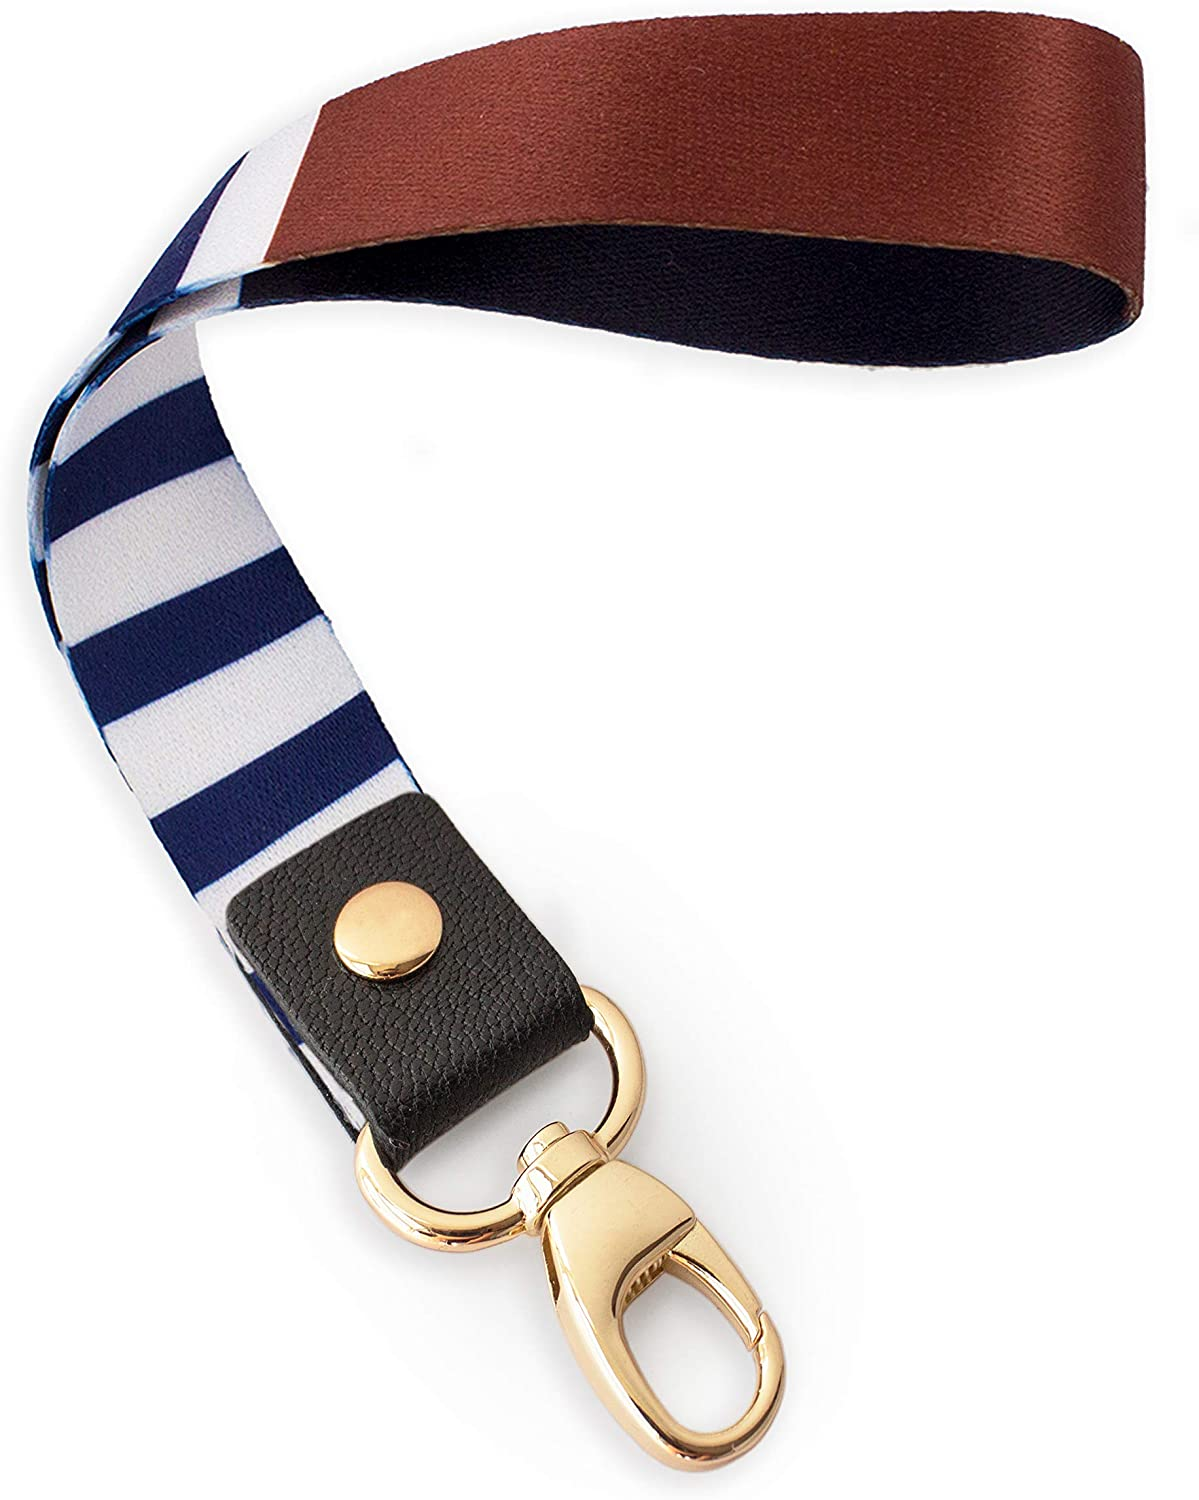 Lightweight Items etc Charms Camera for Key Chain SENLLY Classic Stripes Hand Wrist Lanyard Premium Quality Wristlet Strap with Metal Clasp and Genuine Leather Cell Mobile Phone